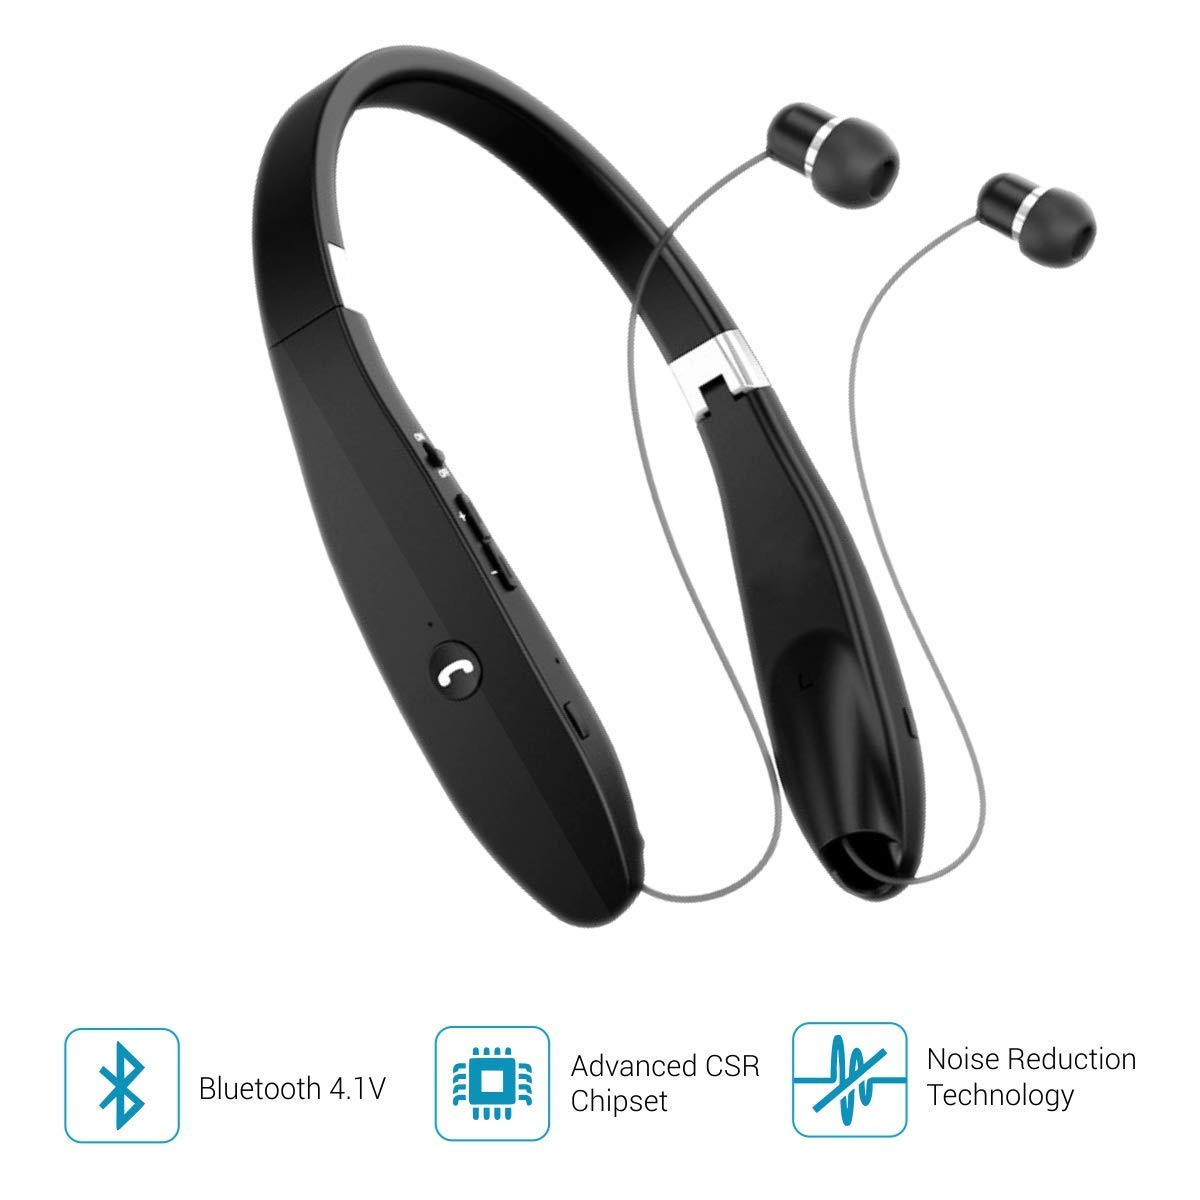 2daffd51eb7 Portronics Harmonic 200 POR-927 Wireless Stereo Headset (Black ...